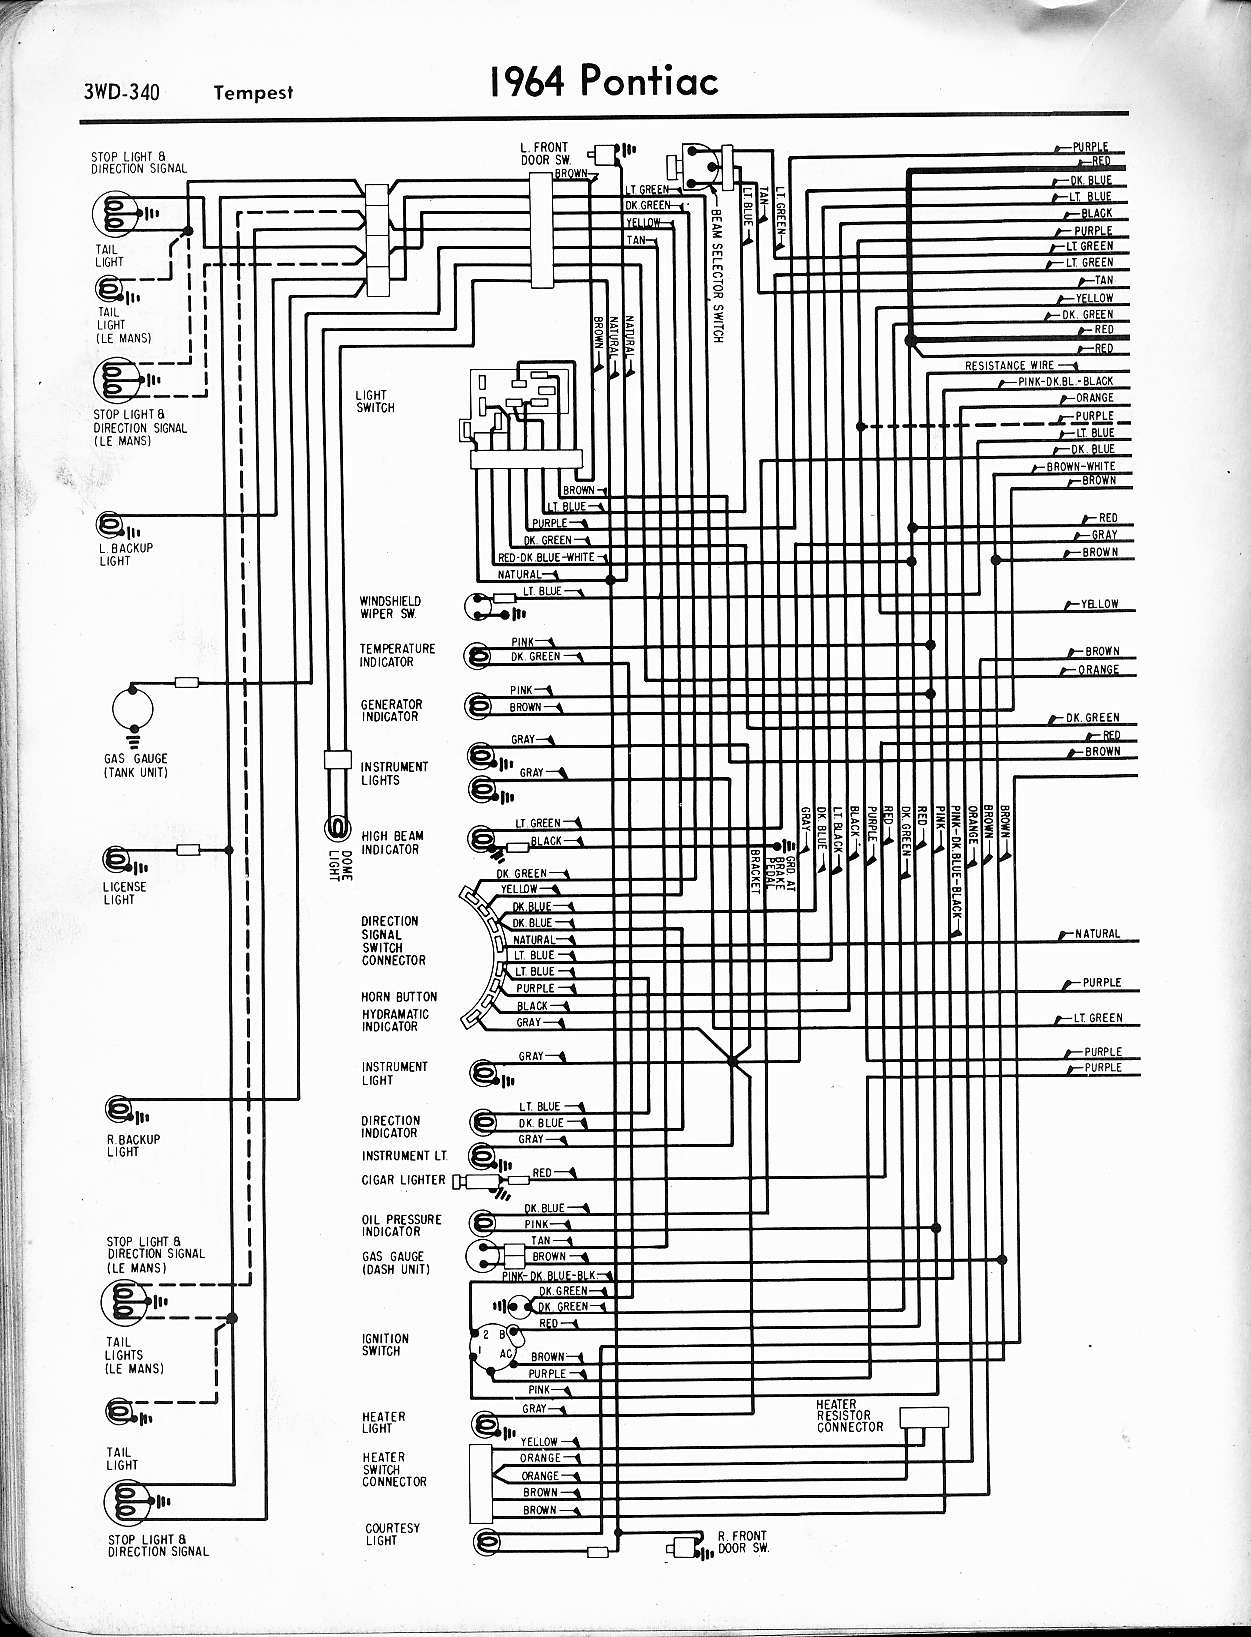 67 Pontiac Coil Wiring Diagram Reinvent Your For Grand Am 1966 Gto Instrument Schematics Rh Parntesis Co Prix Diagrams